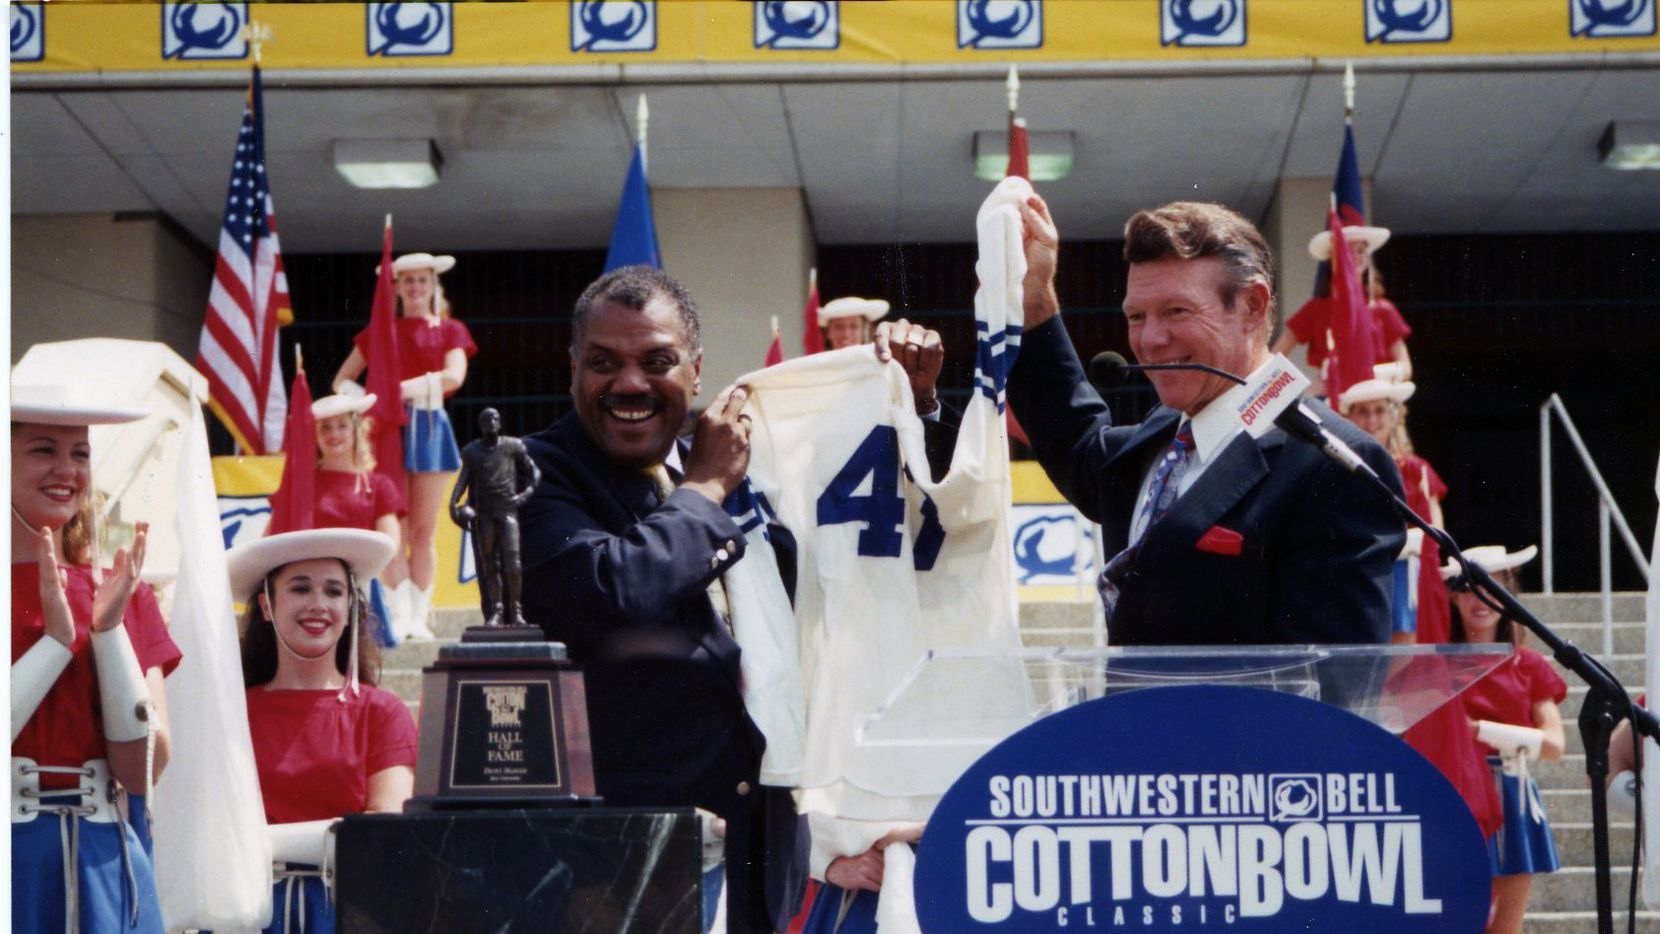 Two-time Cotton Bowl Chairman Fred McClure at the 1998 Cotton Bowl Hall of Fame Induction Ceremony with Rice running back Dicky Maegle.